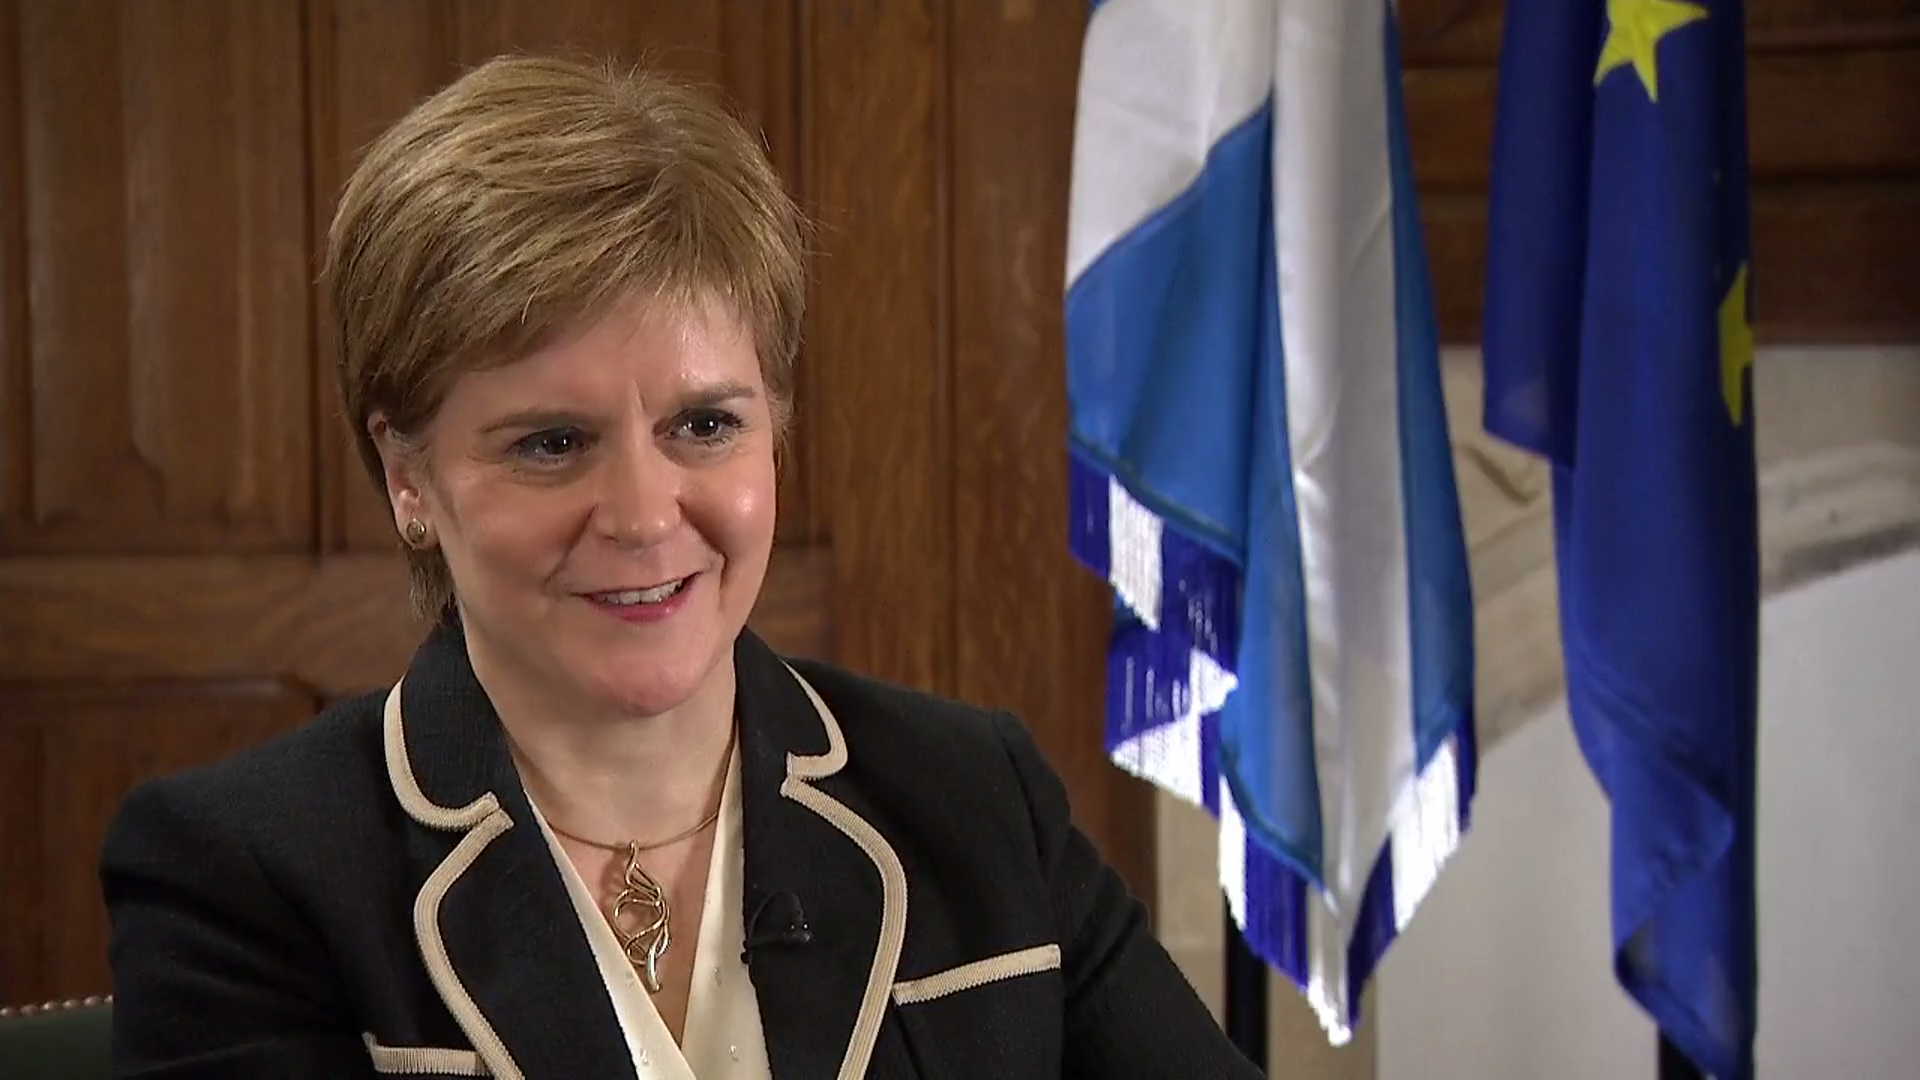 Nicola Sturgeon: 'Huge sympathy for Catalonia… Scottish independence must be legal and legitimate'